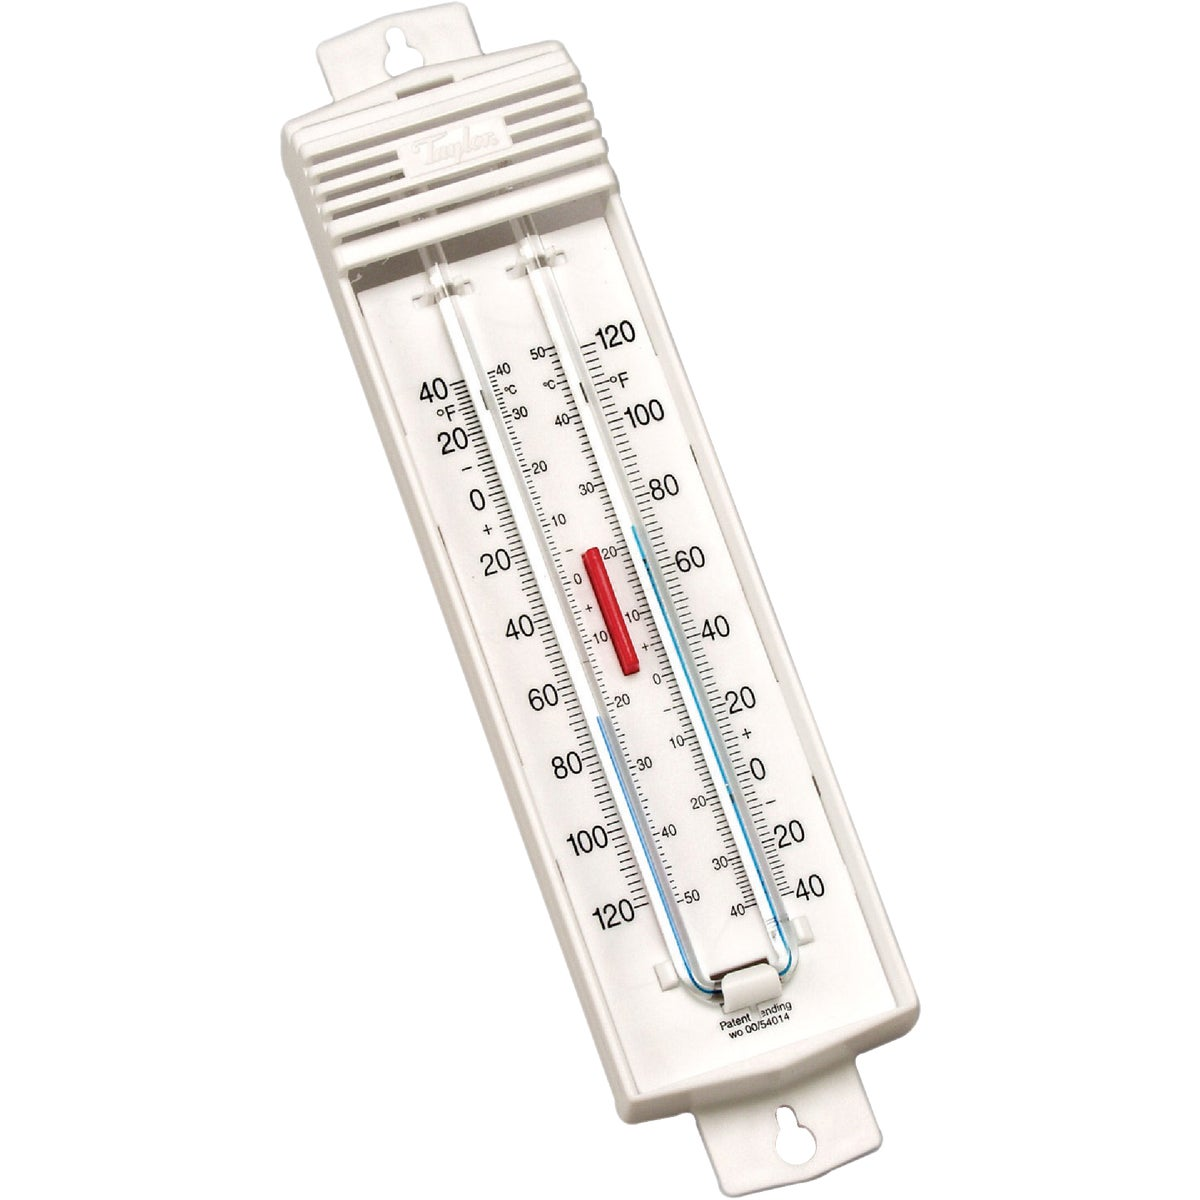 INDOOR/OUTDR THERMOMETER - 5460 by Taylor Precision